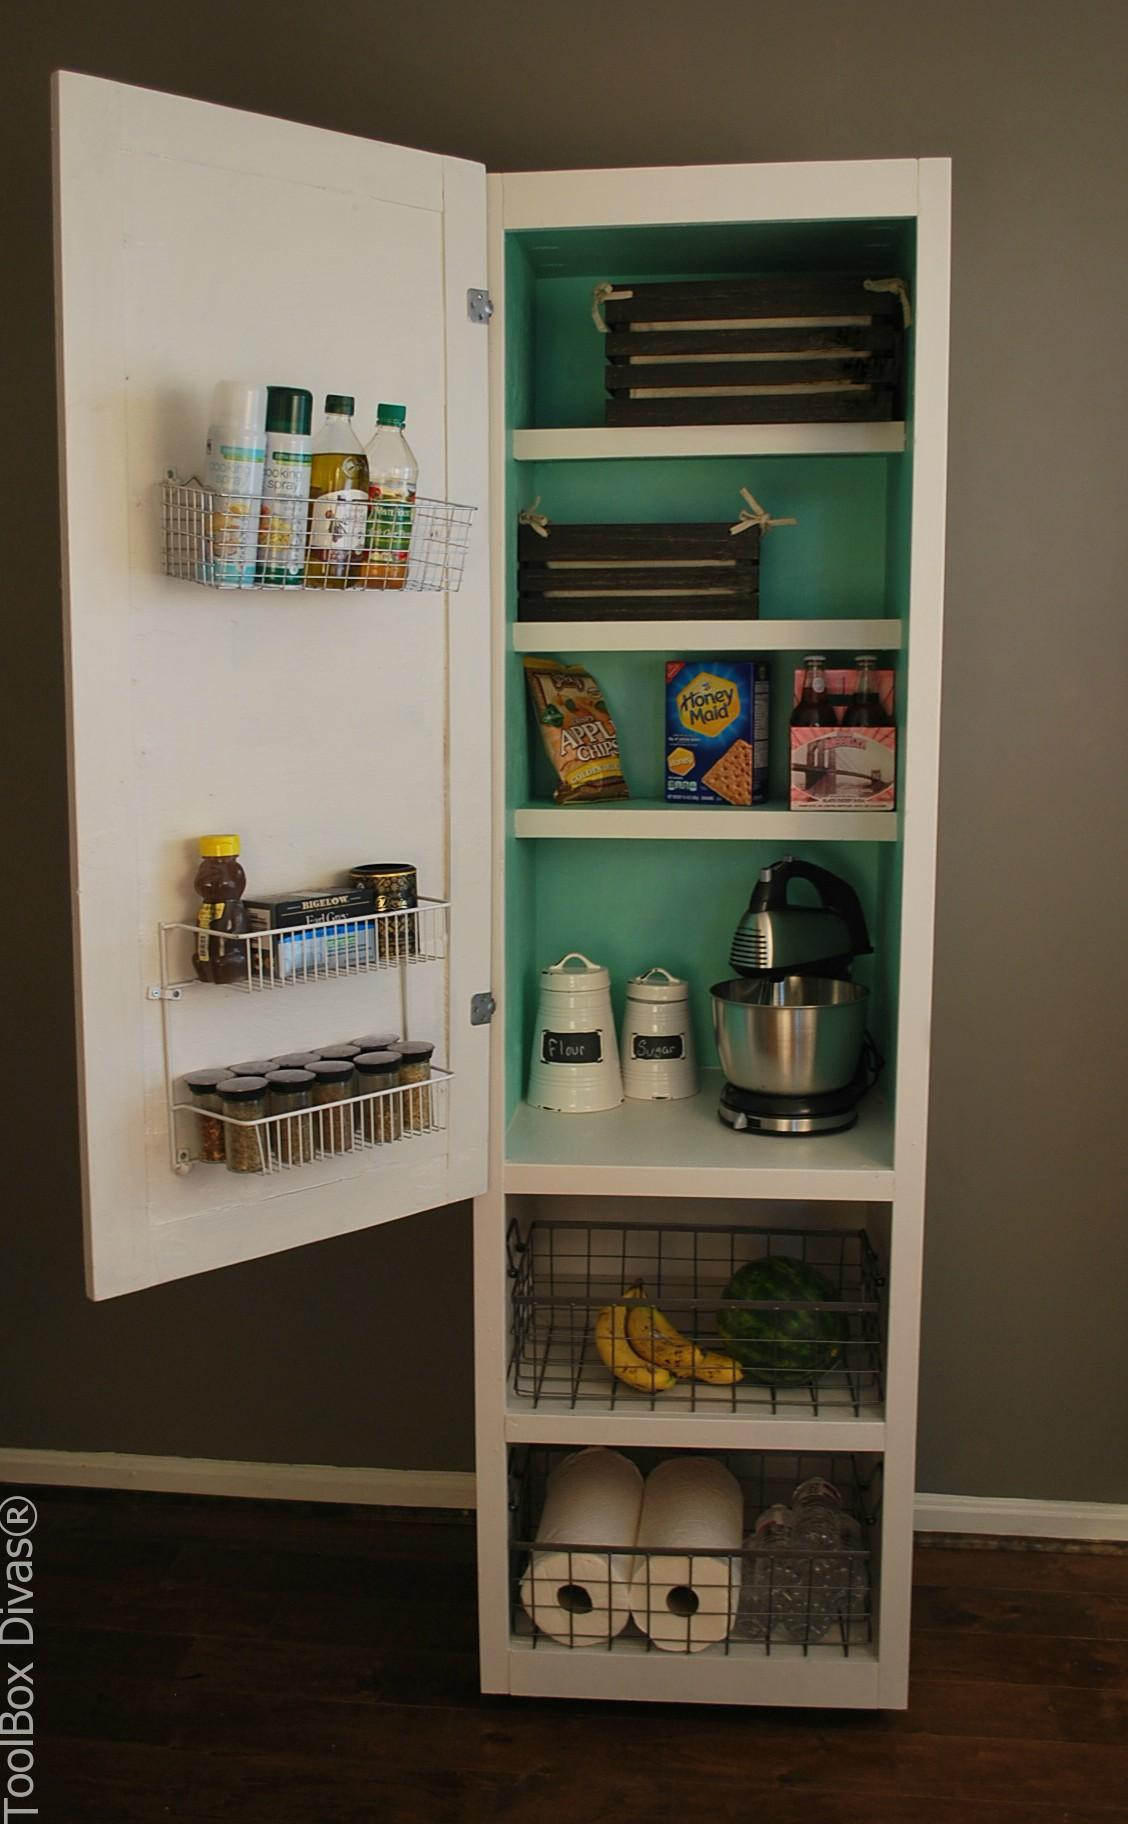 Best ideas about DIY Kitchen Pantry . Save or Pin Remodelaholic Now.